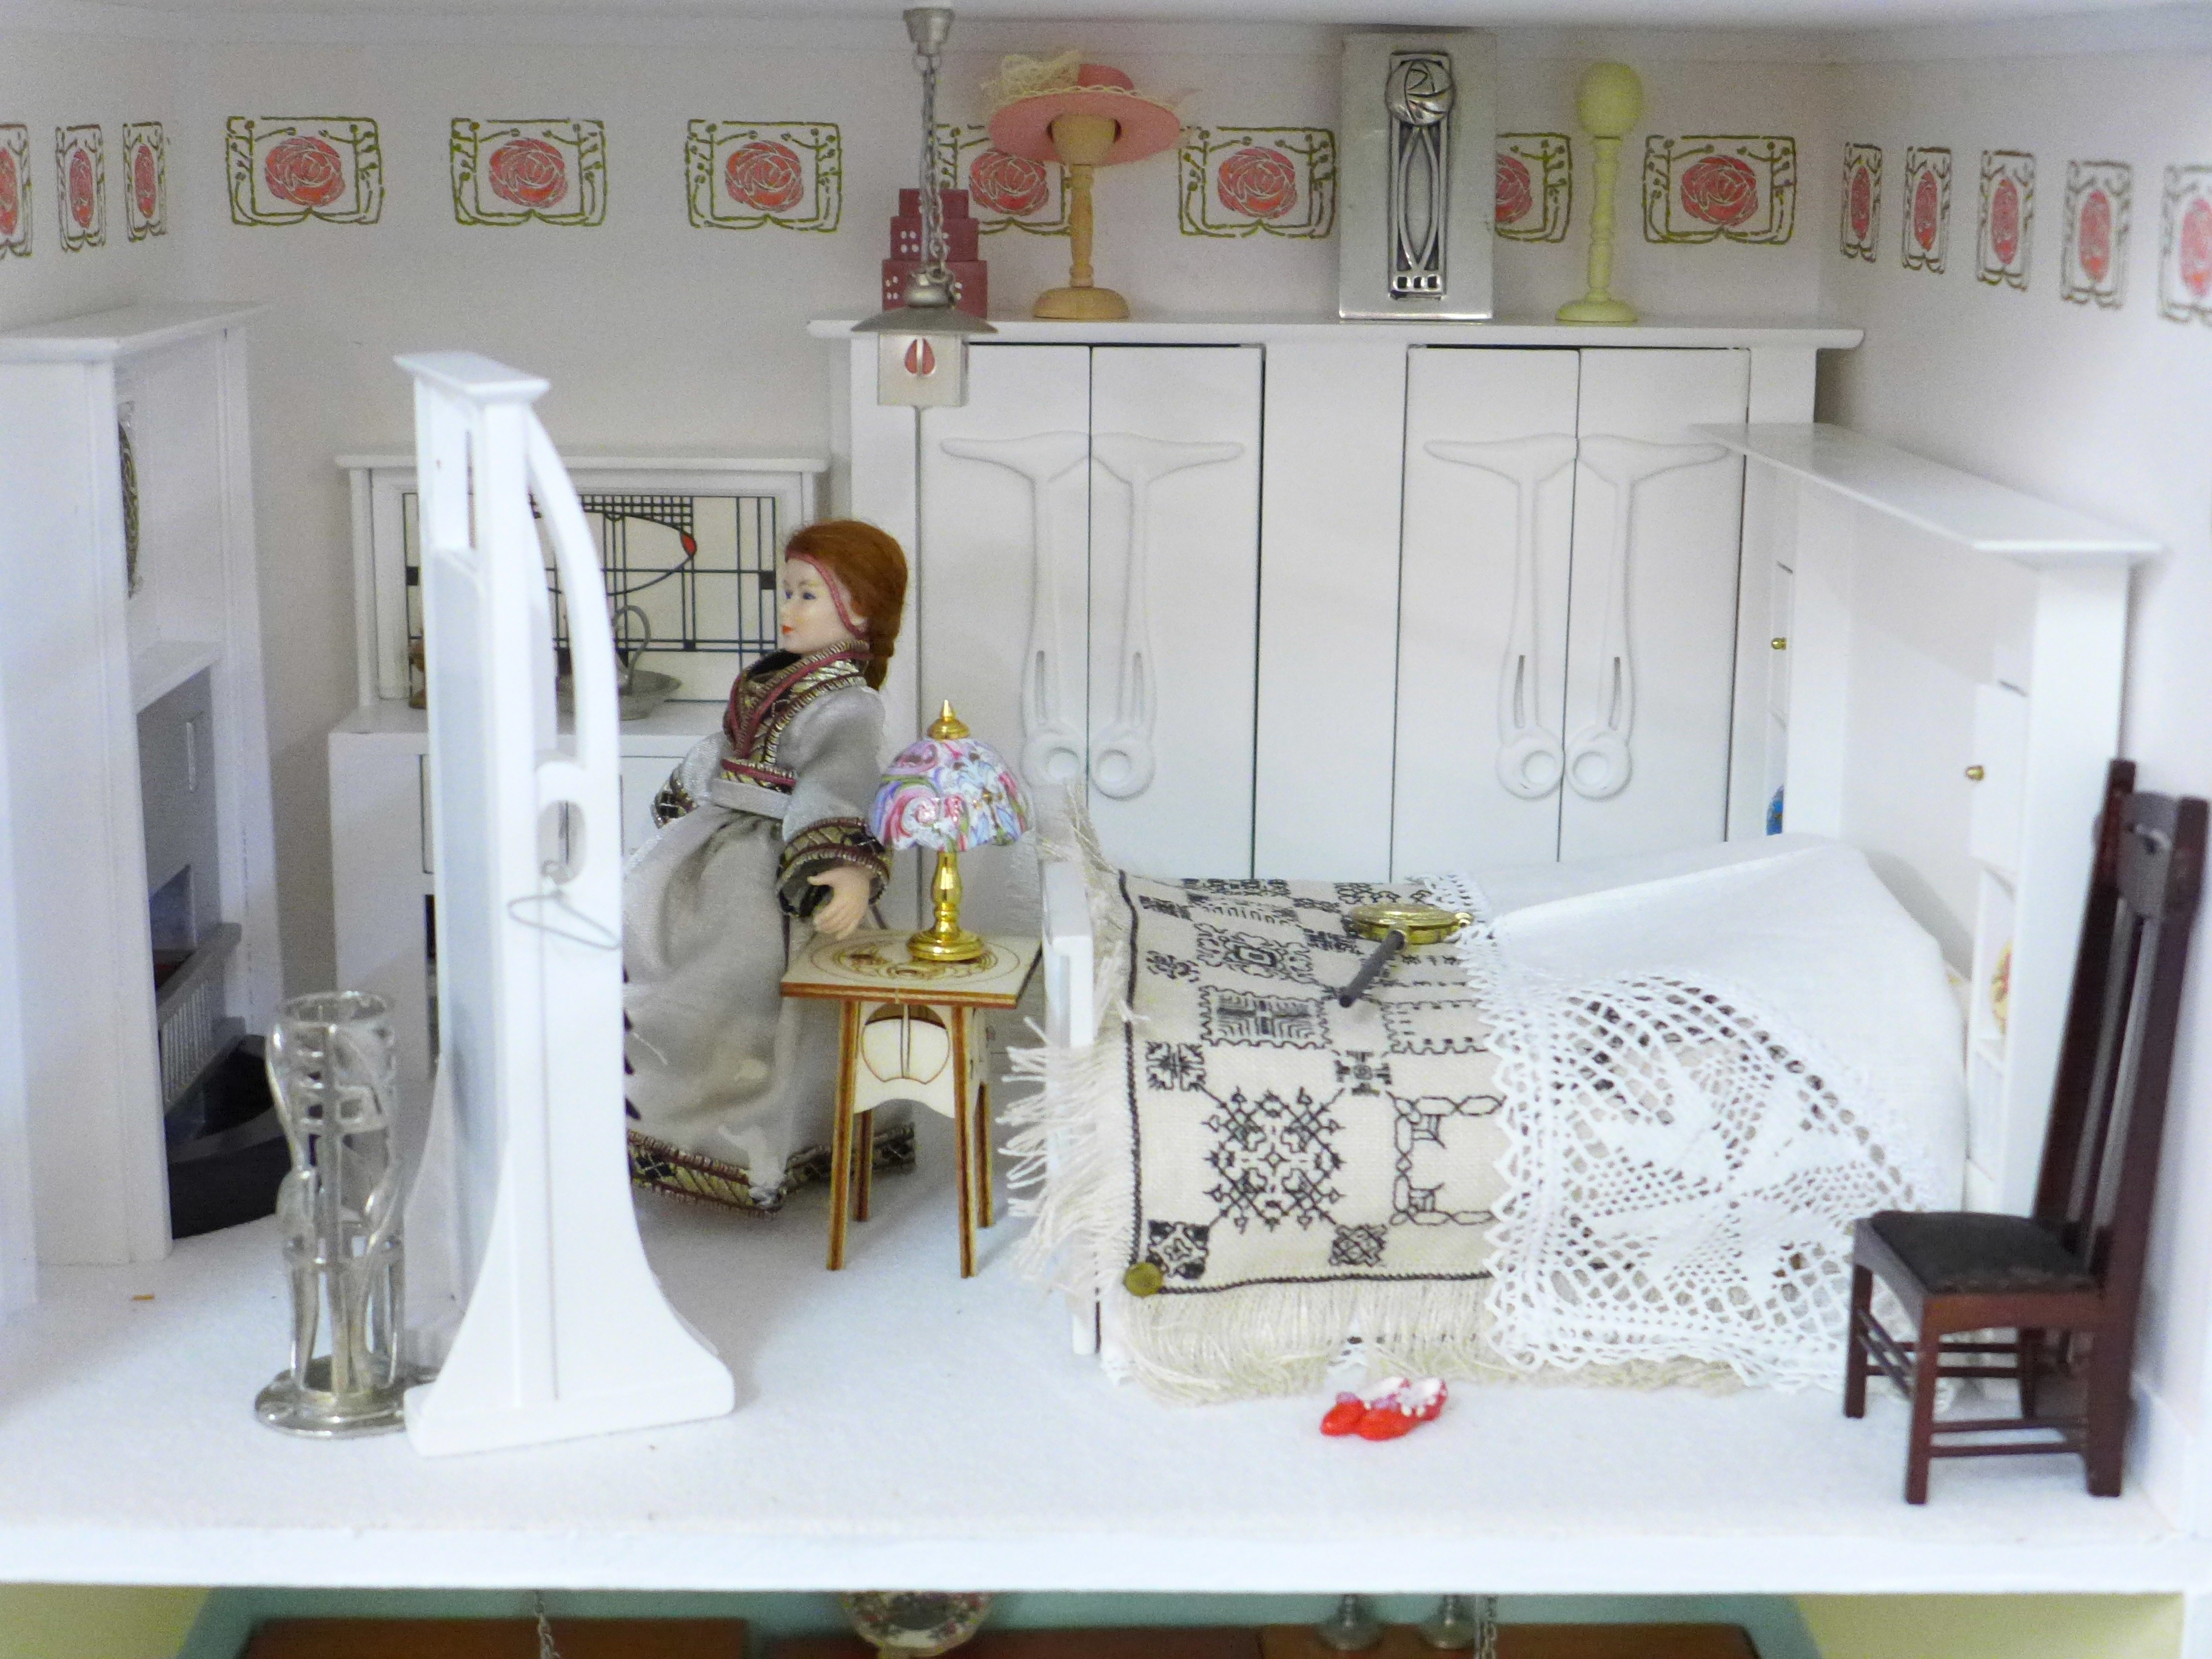 A Dolls House Emporiun Charles Rennie Makintosh-style Scottish House and Furniture. Assembled from a - Image 10 of 18